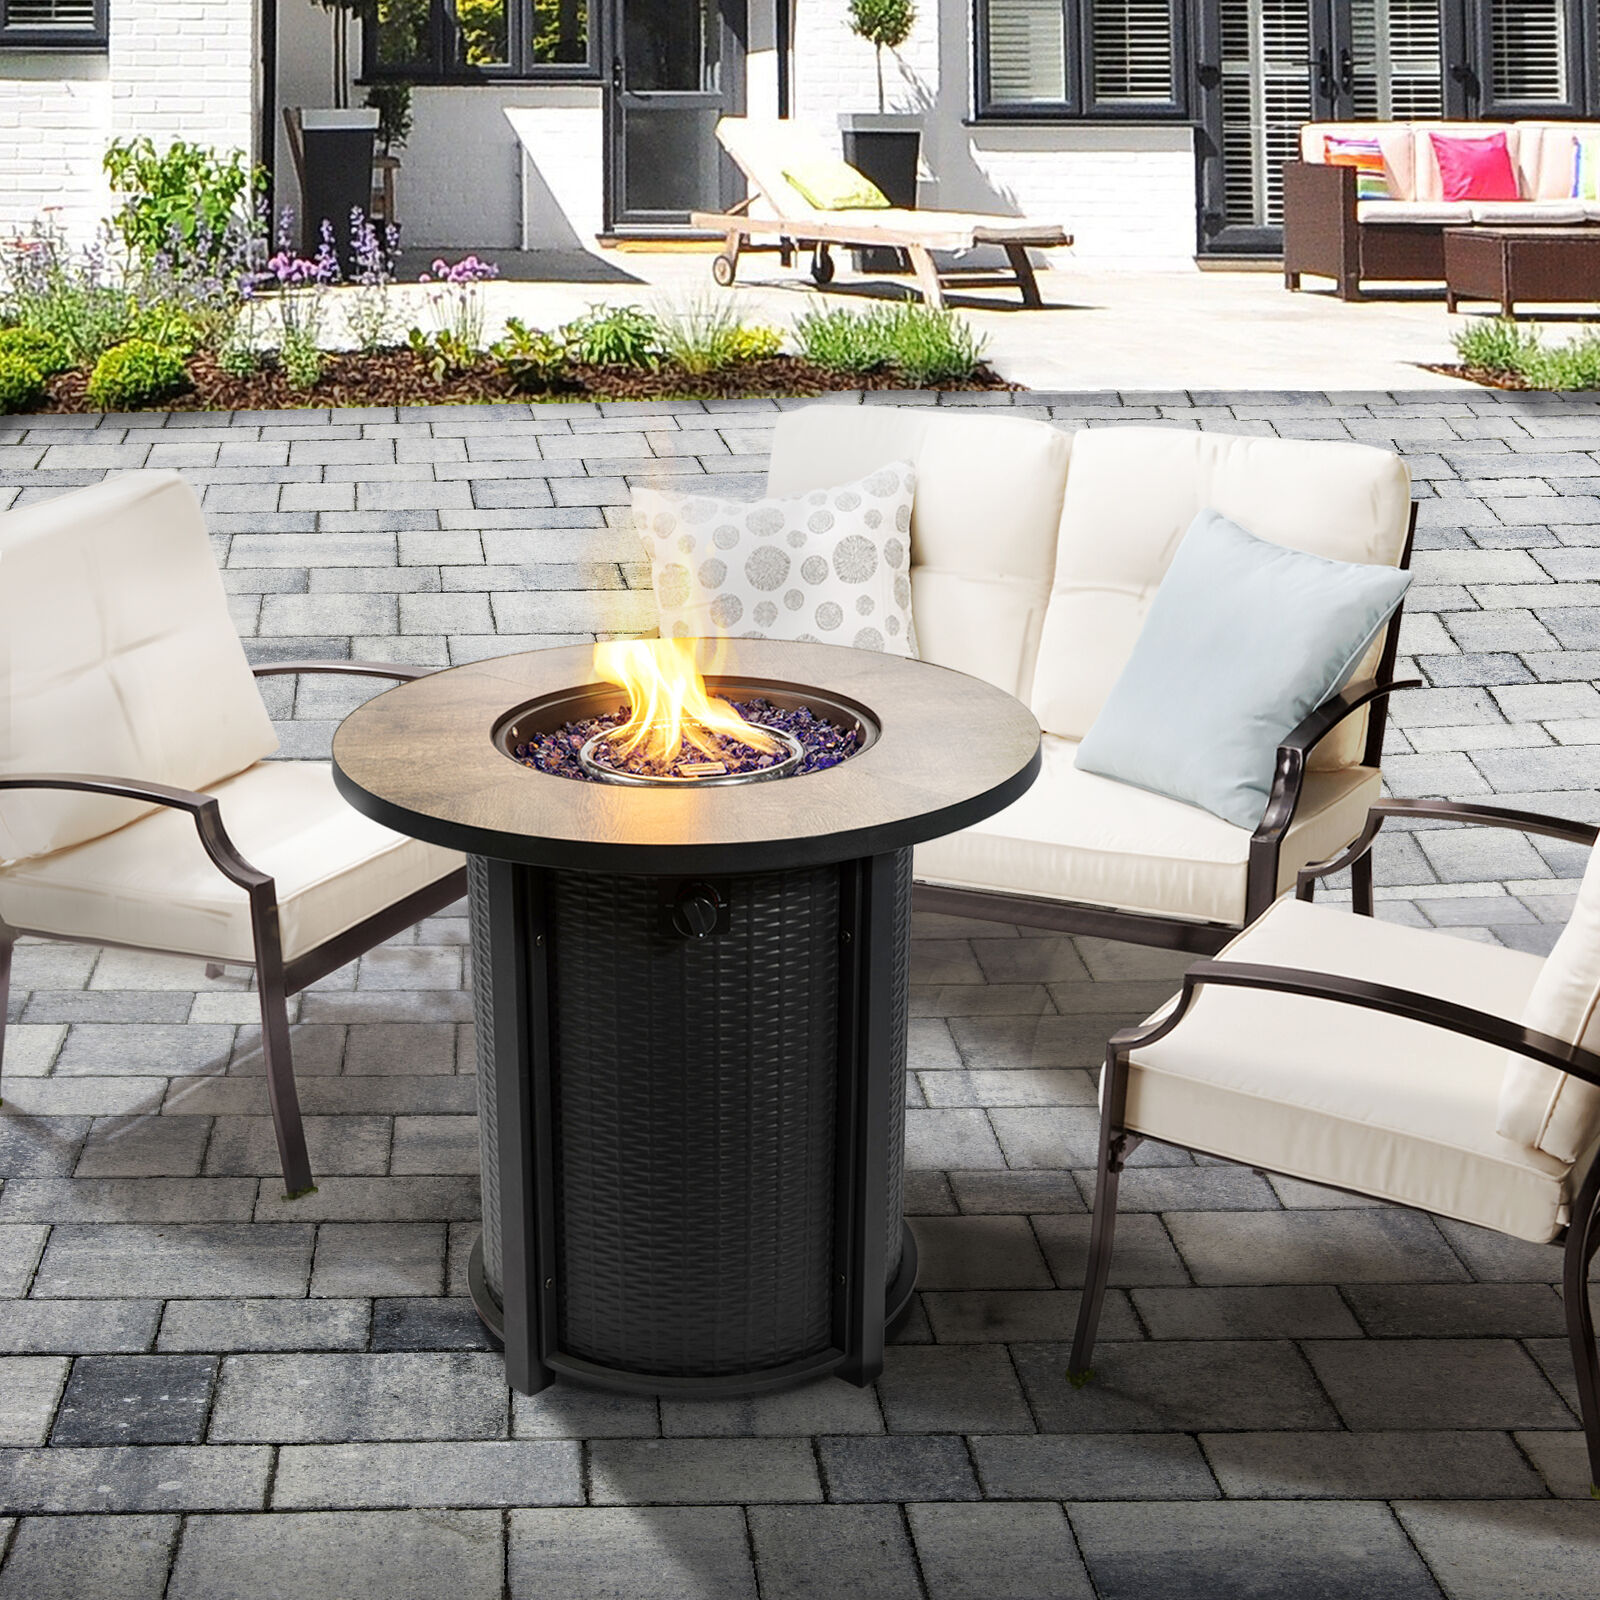 Peaktop Firepit Outdoor Gas Fire Pit Metal With Glass Rocks & Cover HF30900BA-UK